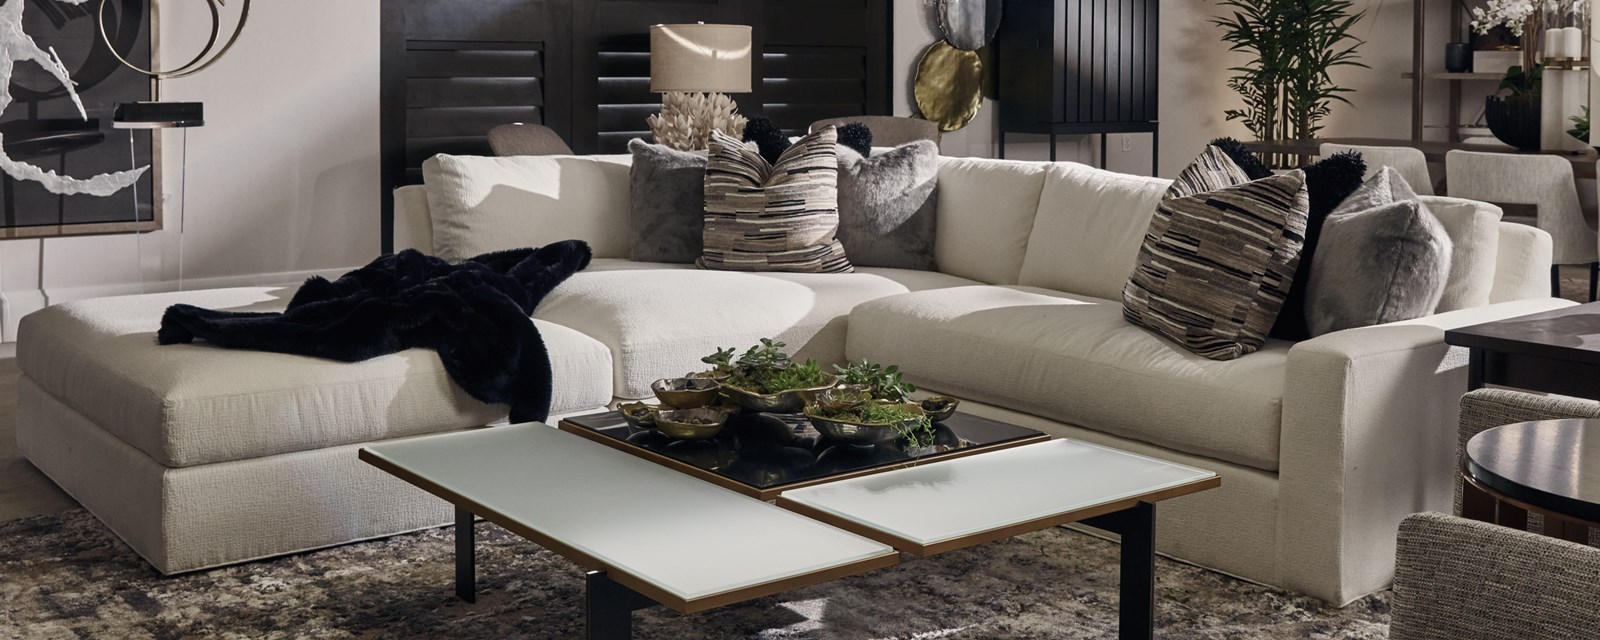 photo featuring the Gladiator 3-piece sectional with movable ottoman on casters for easy movement and configuration change